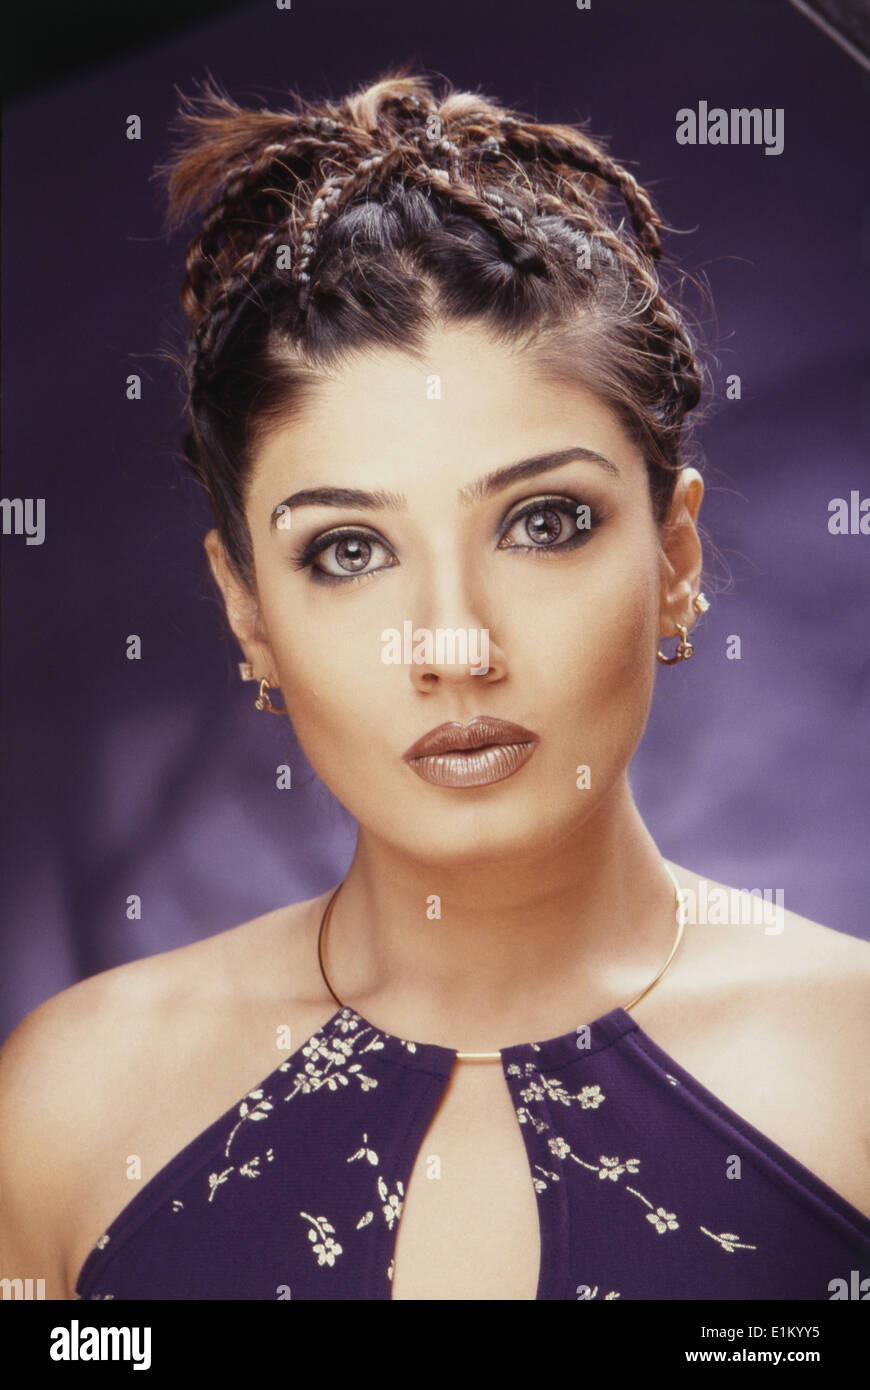 Raveena Tandon Indian Bollywood Hindi Movie Film Actress Stock Photo